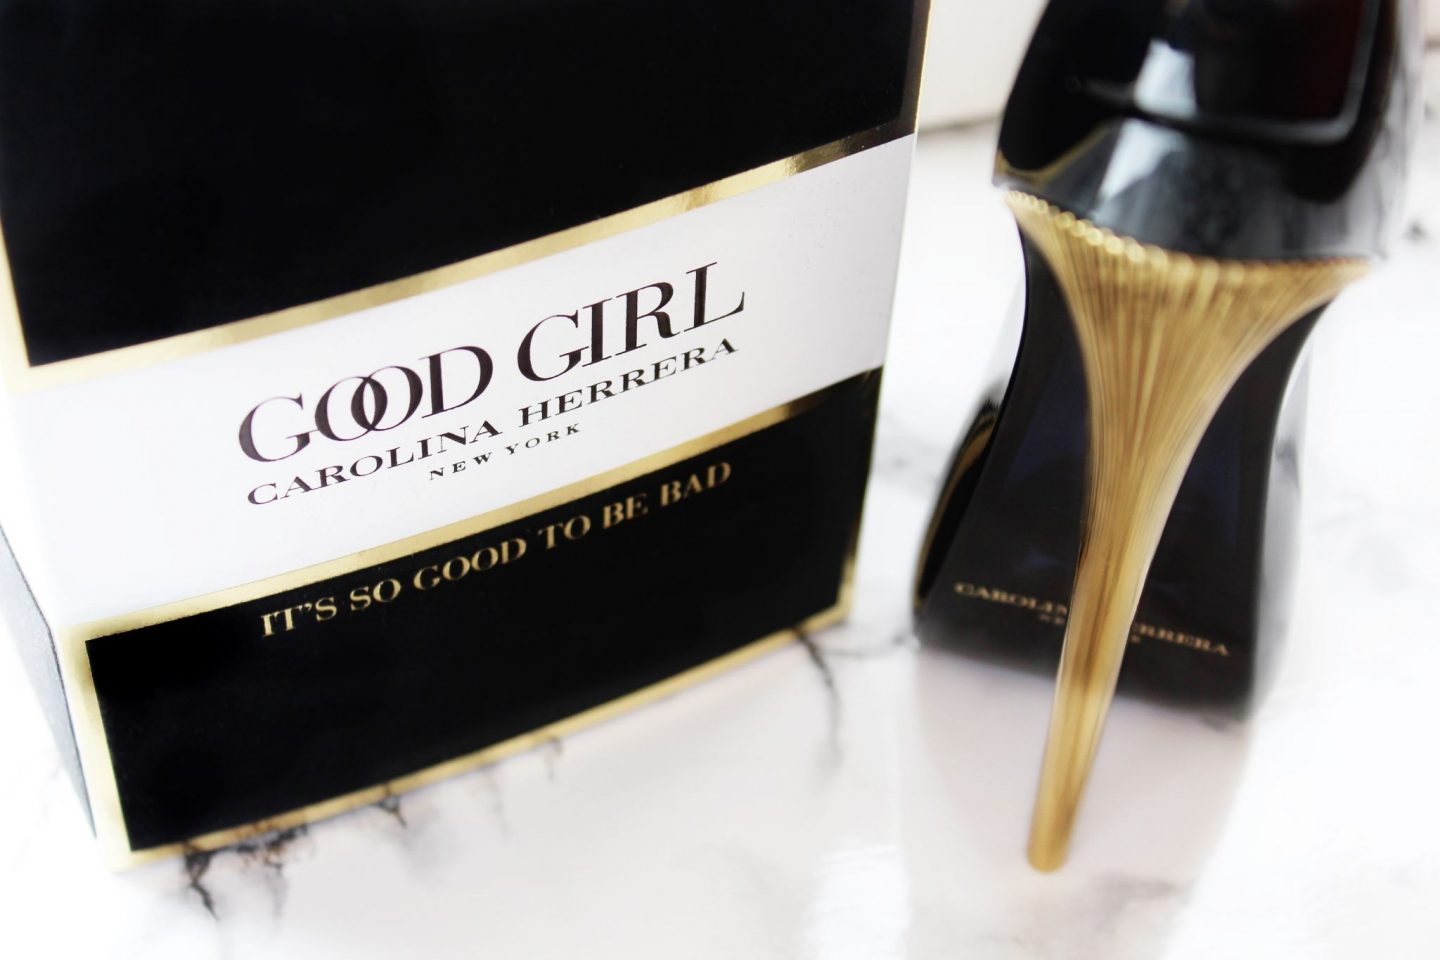 Good Girl - Carolina Herrera Review